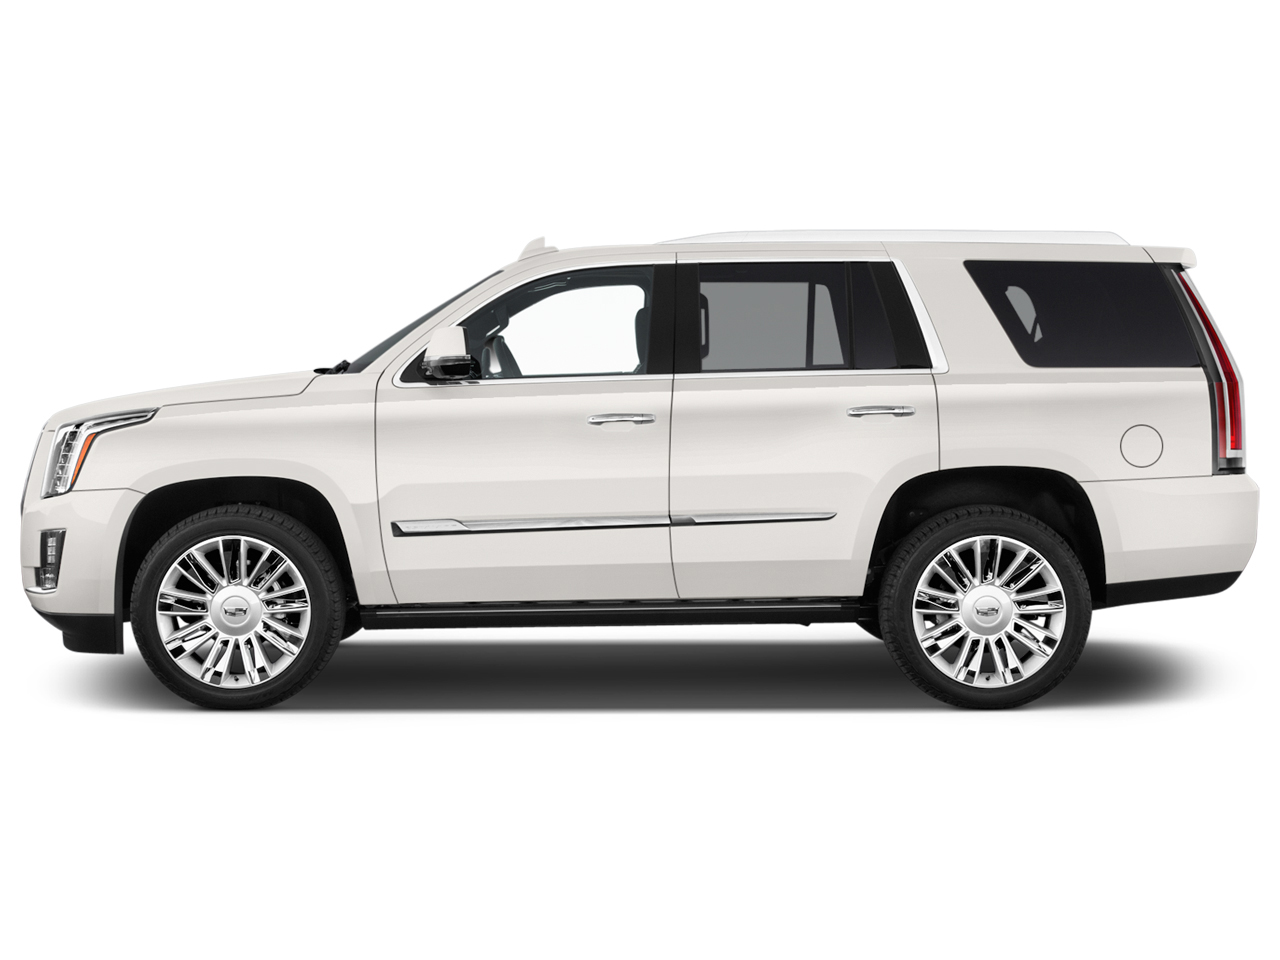 2012 Cadillac Escalade Platinum For Sale >> 2018 Cadillac Escalade Review, Ratings, Specs, Prices, and Photos - The Car Connection